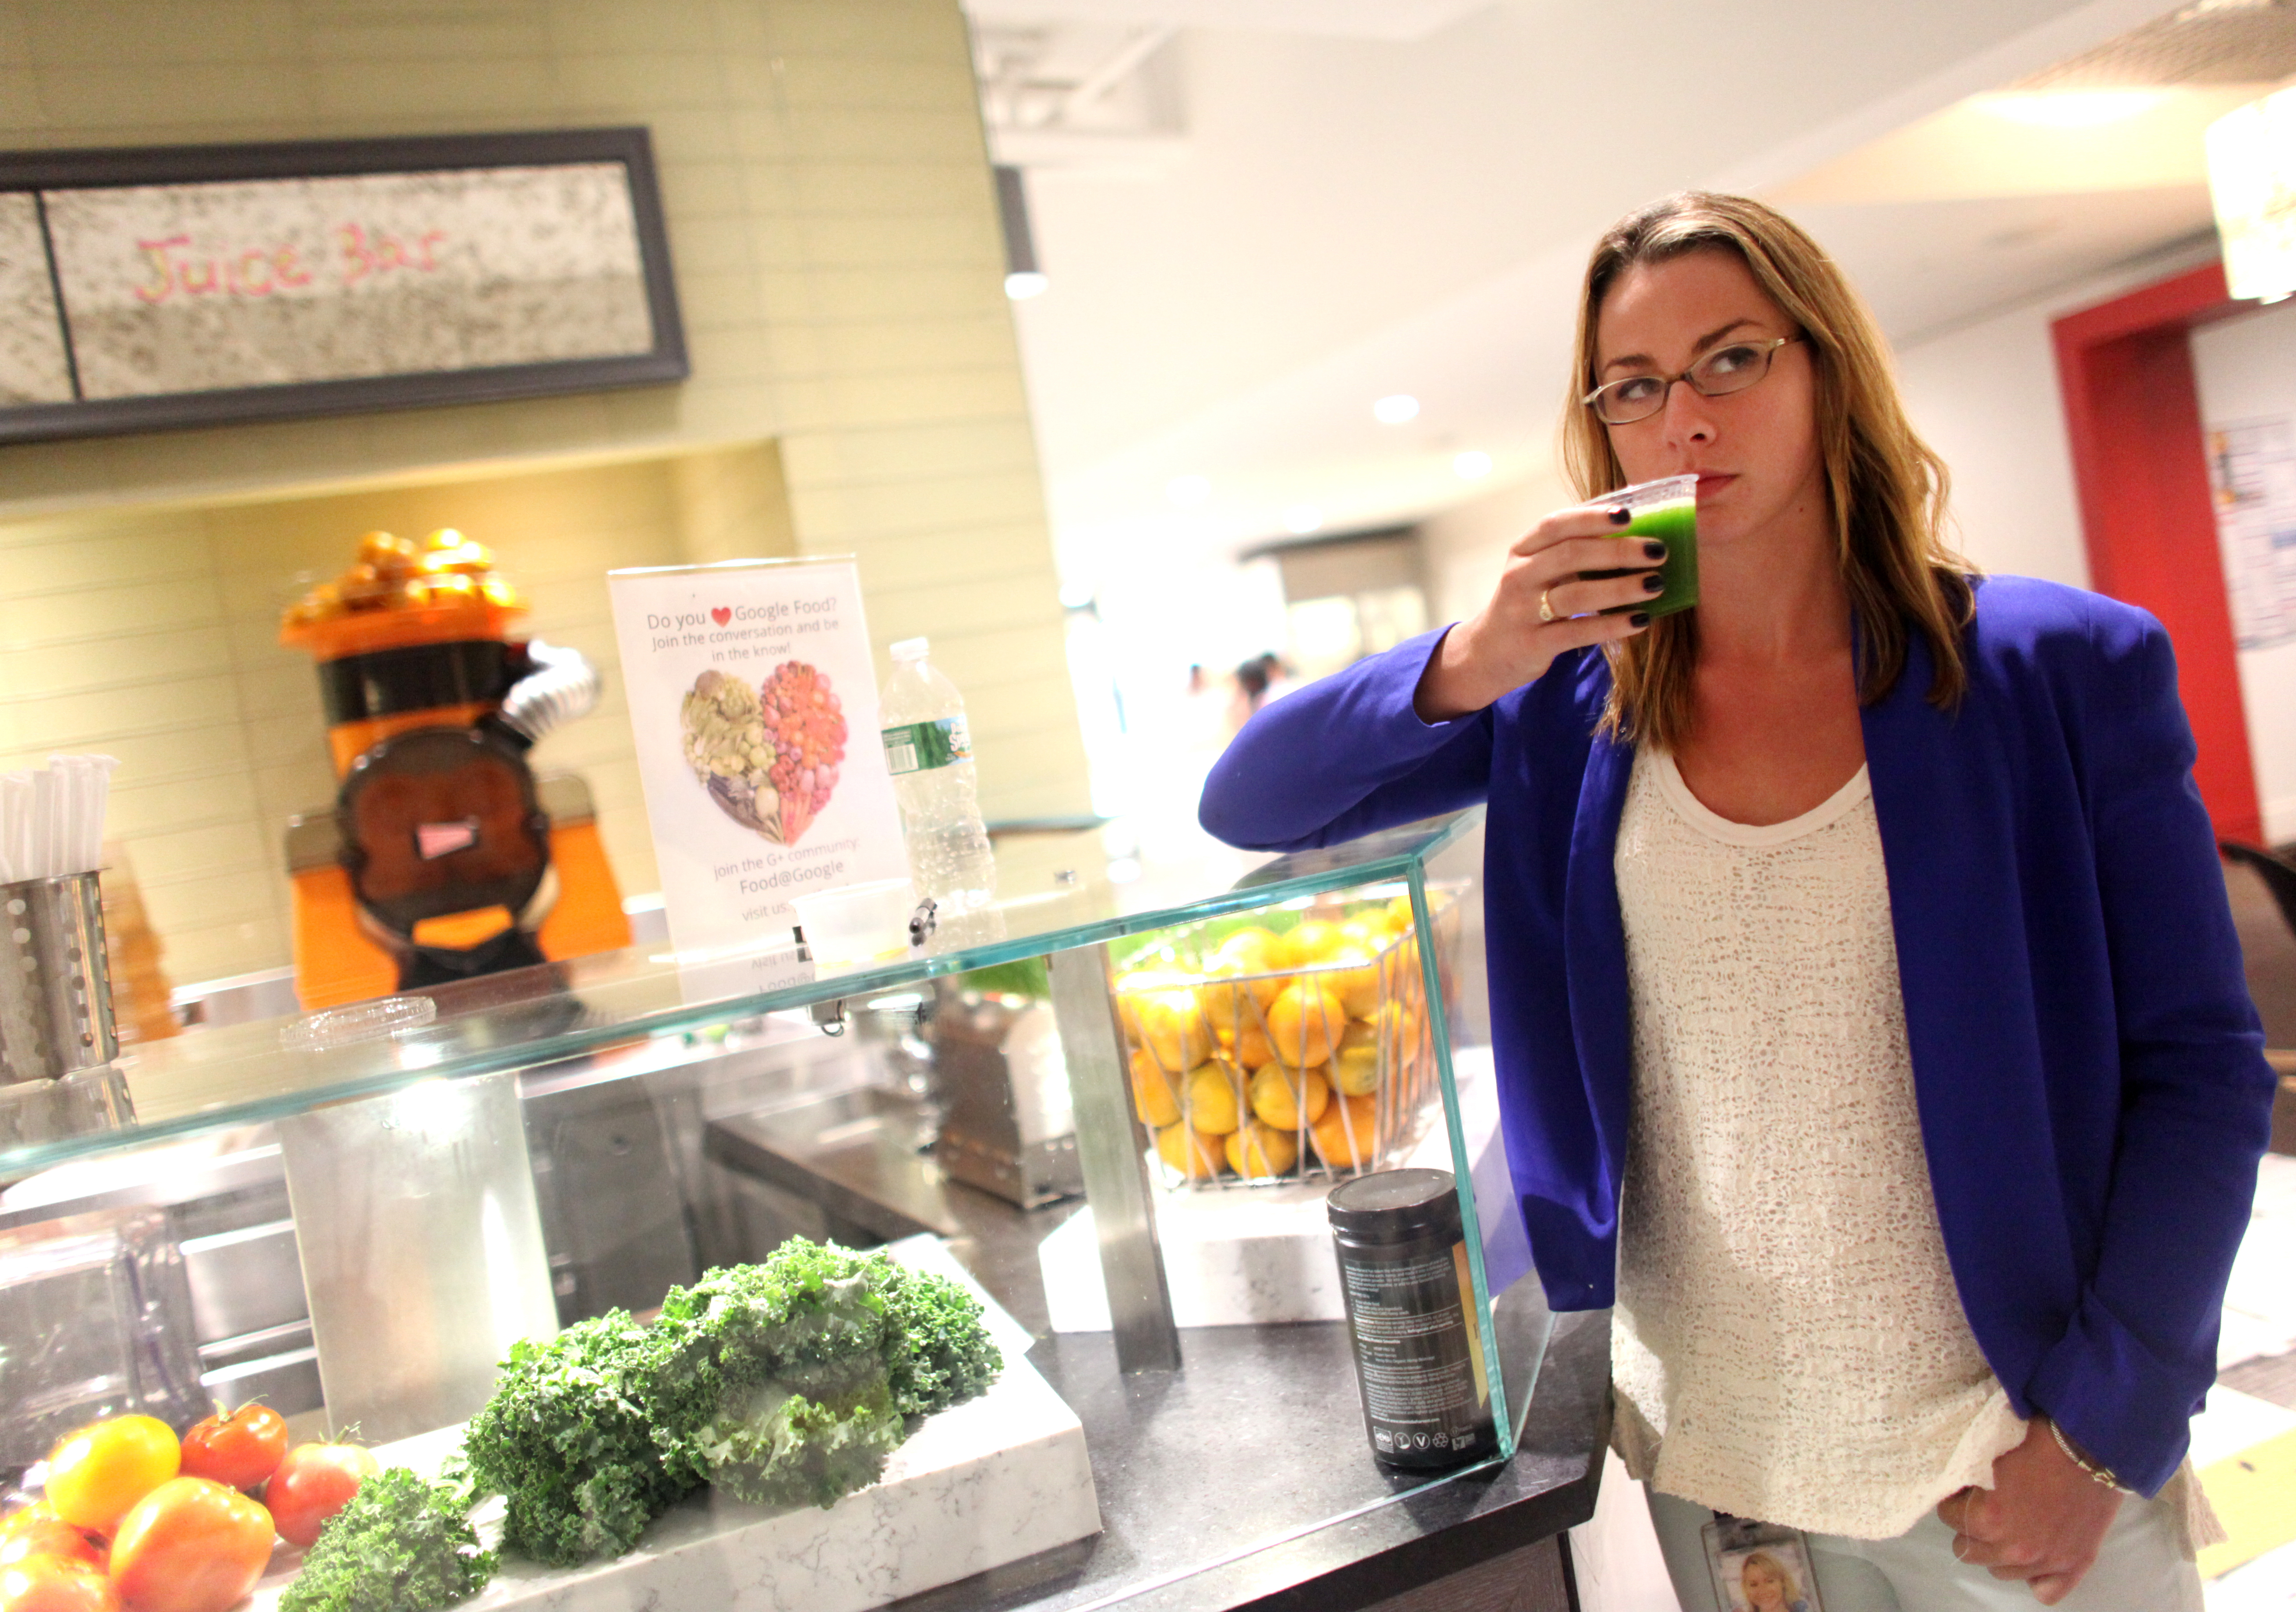 Michelle Sullivan from Zagat drinks juice in the 4th floor cafeteria at Google's headquarters in Manhattan, NY, on August 22, 2013.